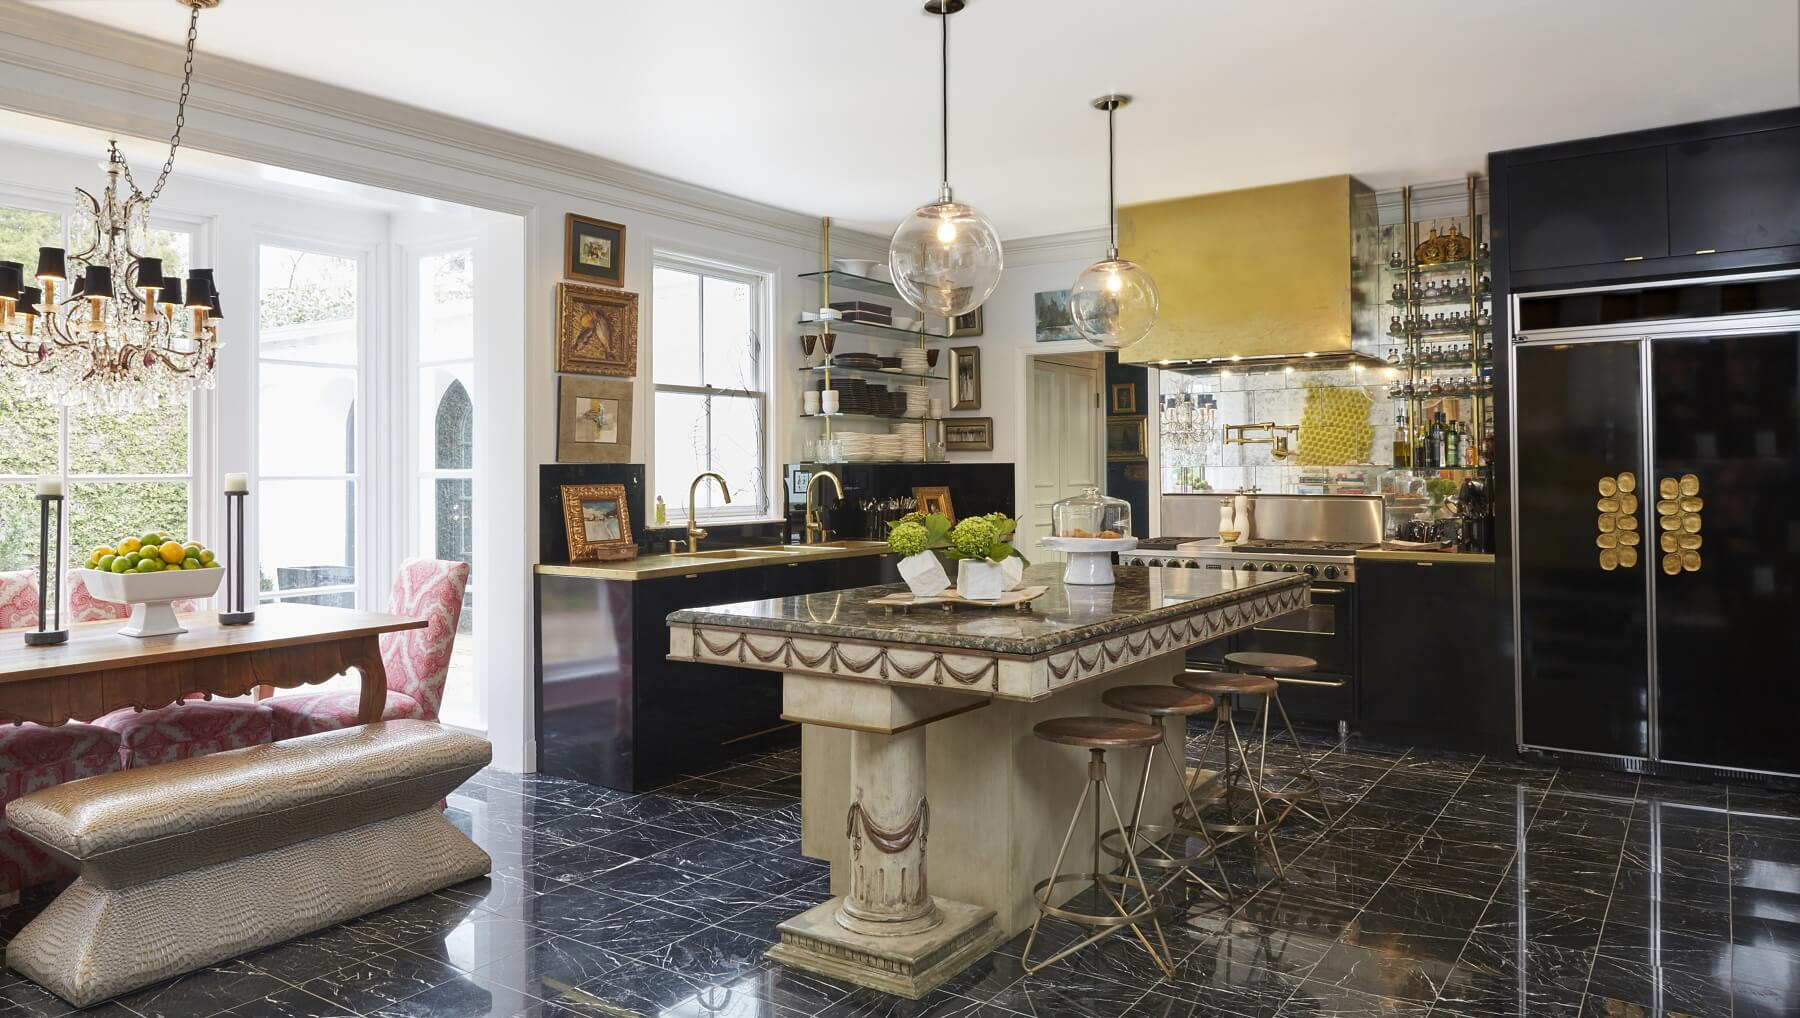 """The kitchen was a total re-do. I had our old dining room table raised to serve as the kitchen island with an added marble countertop and cabinet underneath. It was a glossy, minimal, contemporary look with unlacquered brass accents,"" says Em. ""The whole thing is somewhere between contemporary and not contemporary, so that you have some sense of history. Antiques bring such warmth and life, your past — you can't just throw everything out that's good just to have the glossy, new and abstract."""